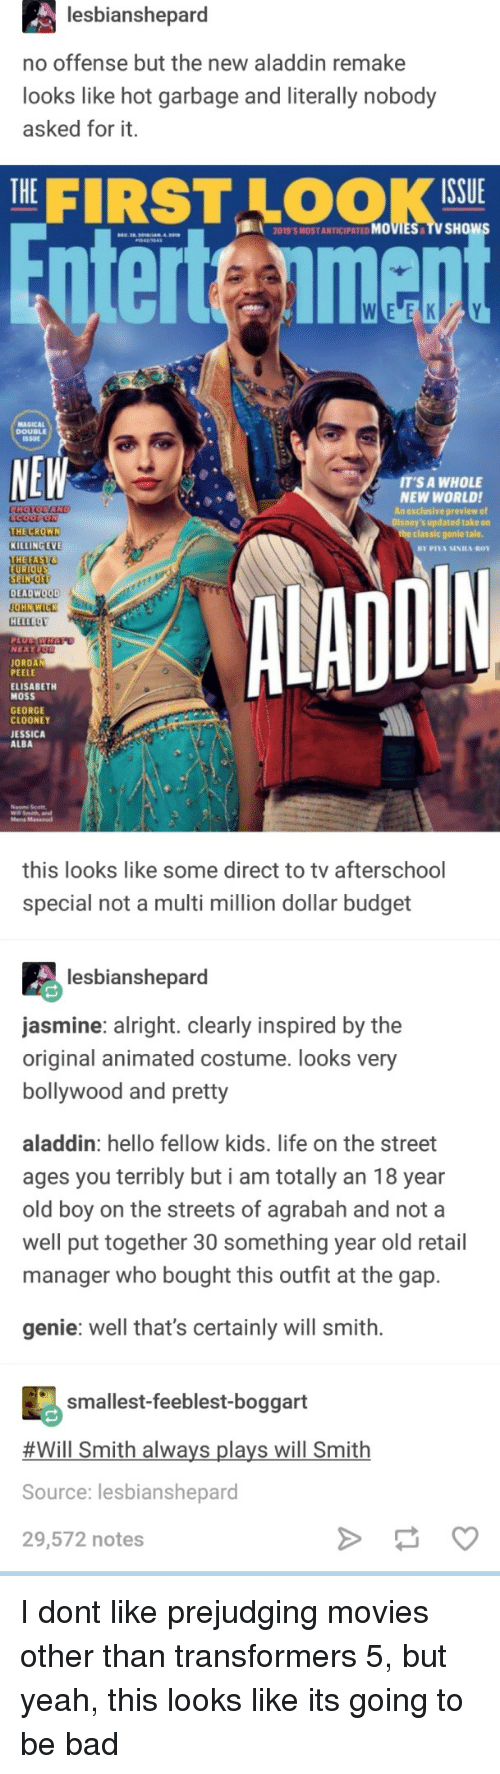 Bollywood: lesbianshepard  no offense but the new aladdin remake  looks like hot garbage and literally nobody  asked for it.  THE|  FIRST LOOK  ISSUE  2019'S MOST ANTICIPATED MOVIES TV SHOw  nterteimen  MAGICAL  DOUBLEE  SSUE  NEW  T'S A WHOLE  NEW WORLDI  An exclusive preview of  s updated take on  THE CROWN  KILLING EVE  THETAST  the classic genle tale.  DIN  EU  SPIN-O  DEADWOOD  HELLBOY  NEXT  JORDAN  PEELE  ELISABETH  MOSS  GEORGE  CLOONEY  JESSICA  ALBA  Mena Massoud  this looks like some direct to tv afterschool  special not a multi million dollar budget  lesbianshepard  asmine: alright. clearly inspired by the  original animated costume. looks very  bollywood and pretty  aladdin: hello fellow kids. life on the street  ages you terribly but i am totally an 18 year  old boy on the streets of agrabah and not a  well put together 30 something year old retail  manager who bought this outfit at the gap.  genie: well that's certainly will smith.  smallest-feeblest-boggart  #Will Smith always plays will Smith  Source: lesbianshepard  29,572 notes I dont like prejudging movies other than transformers 5, but yeah, this looks like its going to be bad